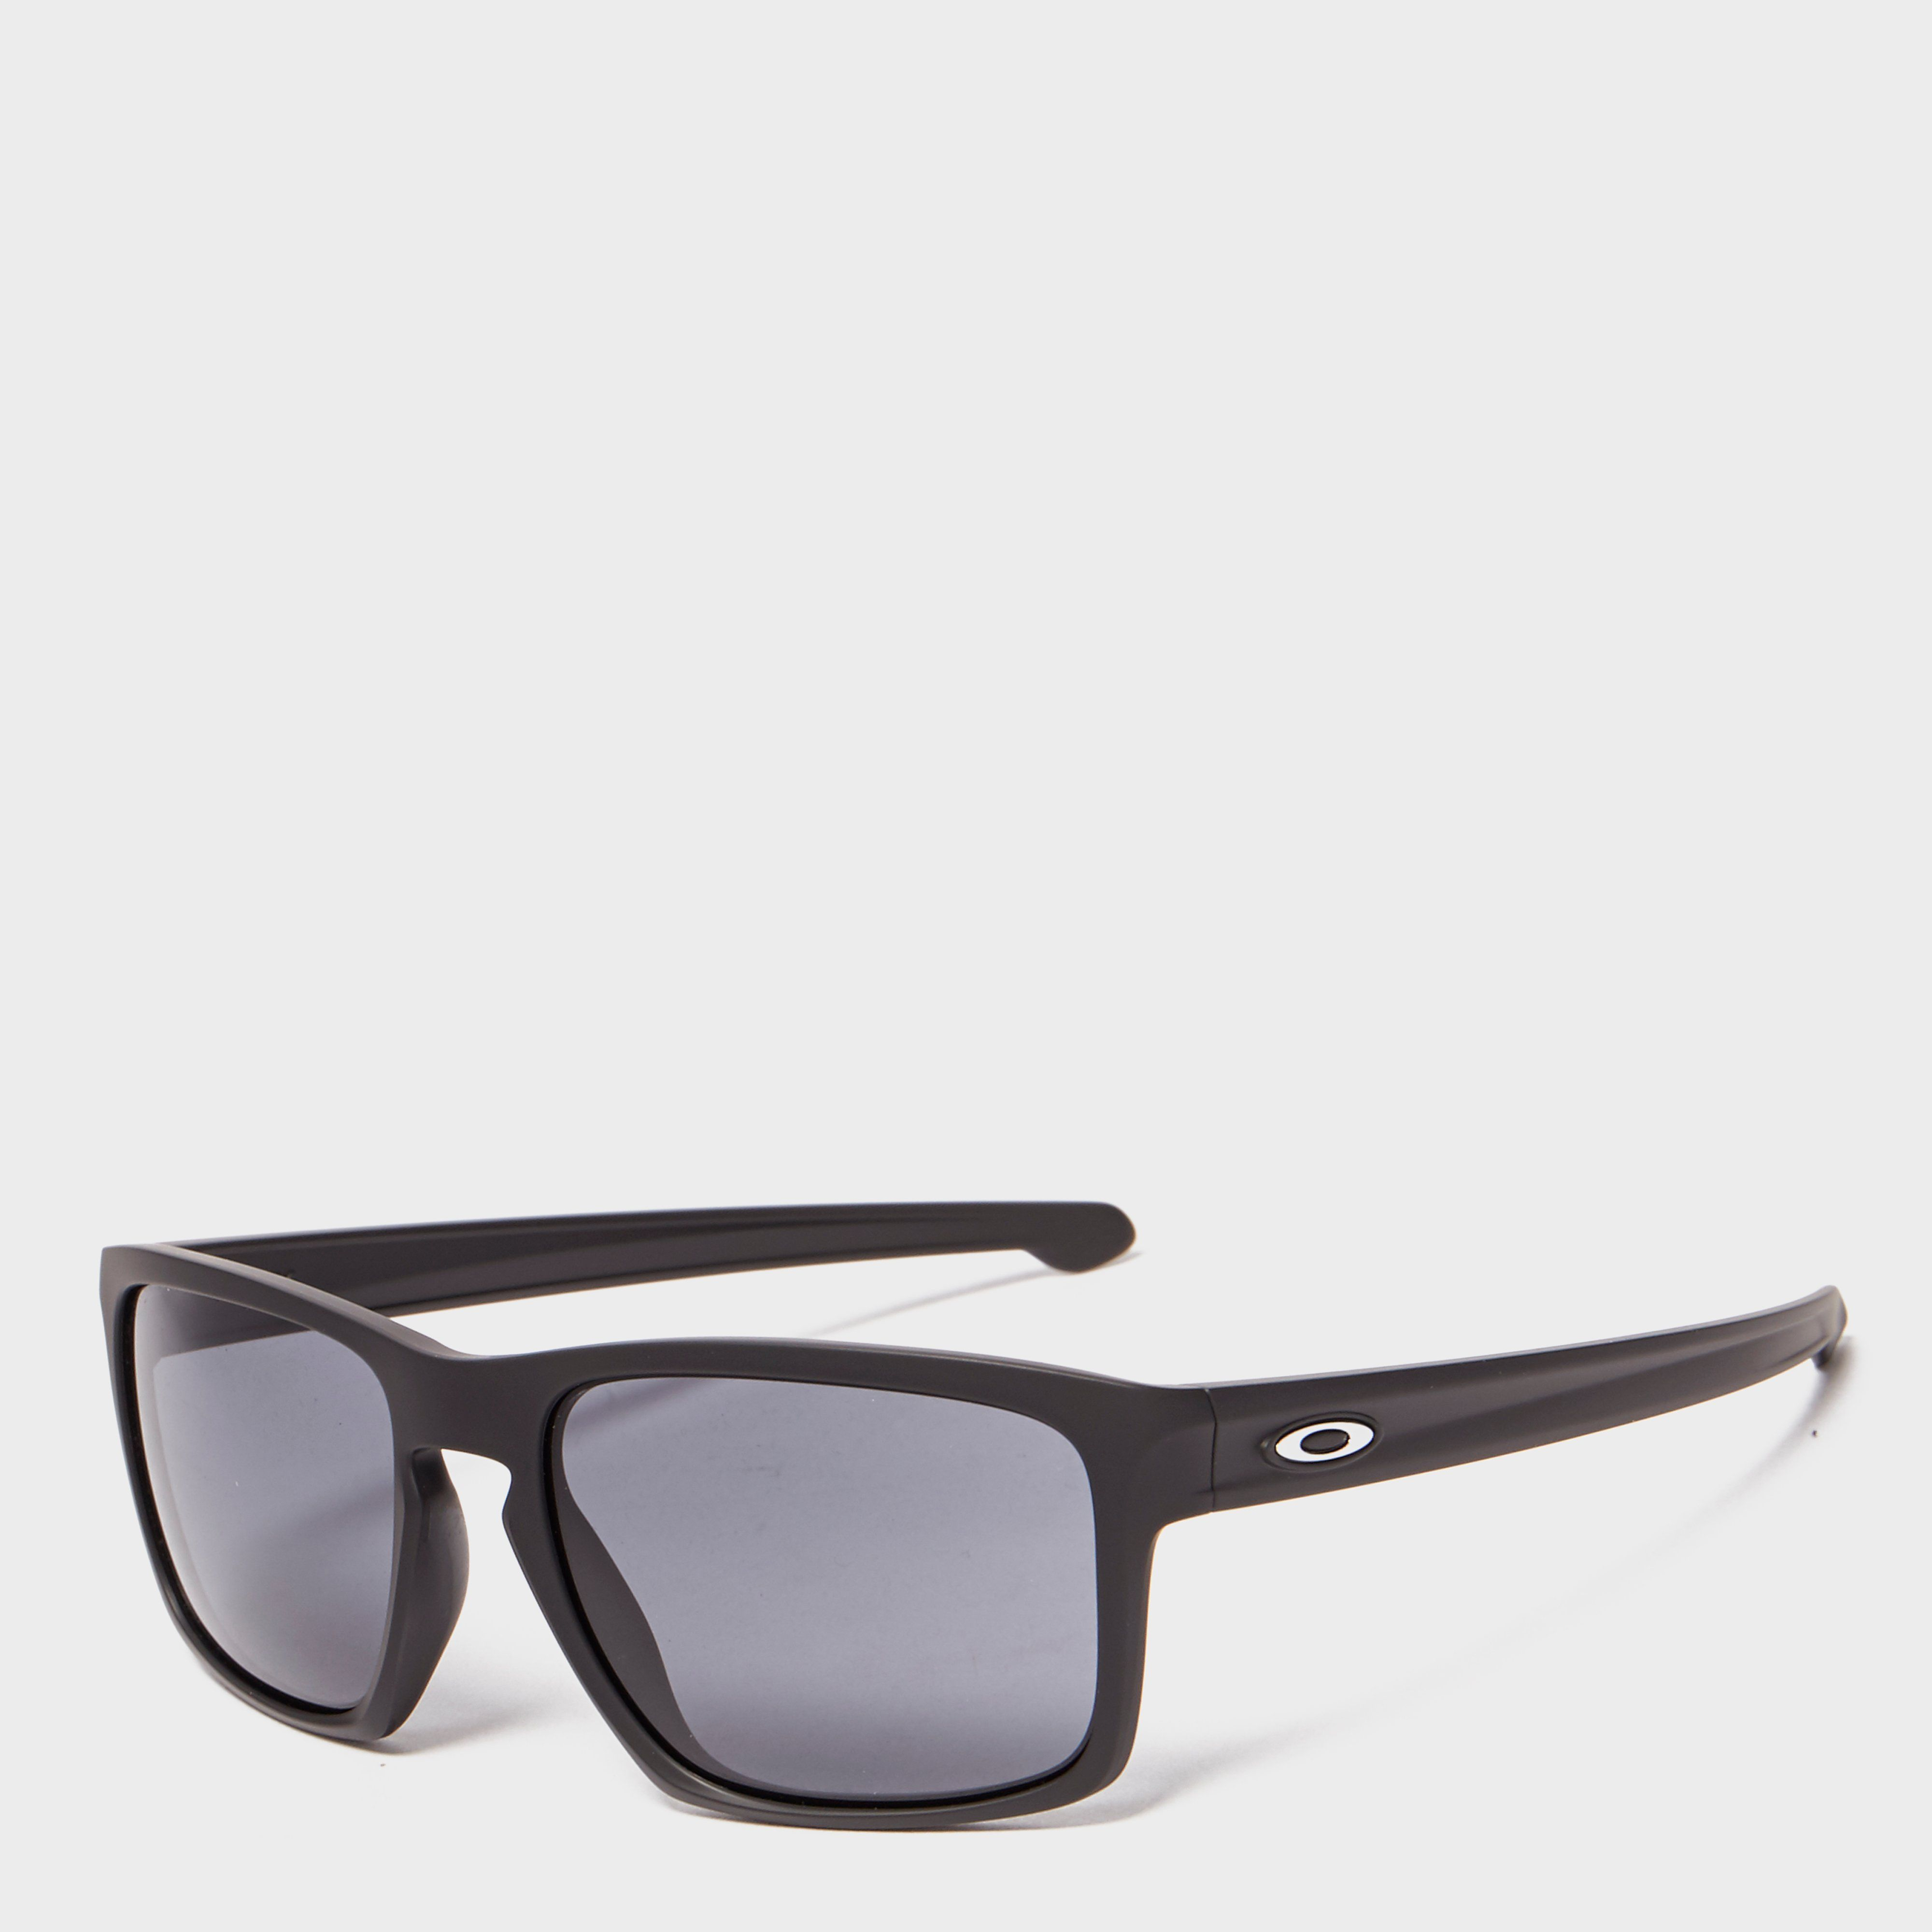 OAKLEY Silver™ Sunglasses